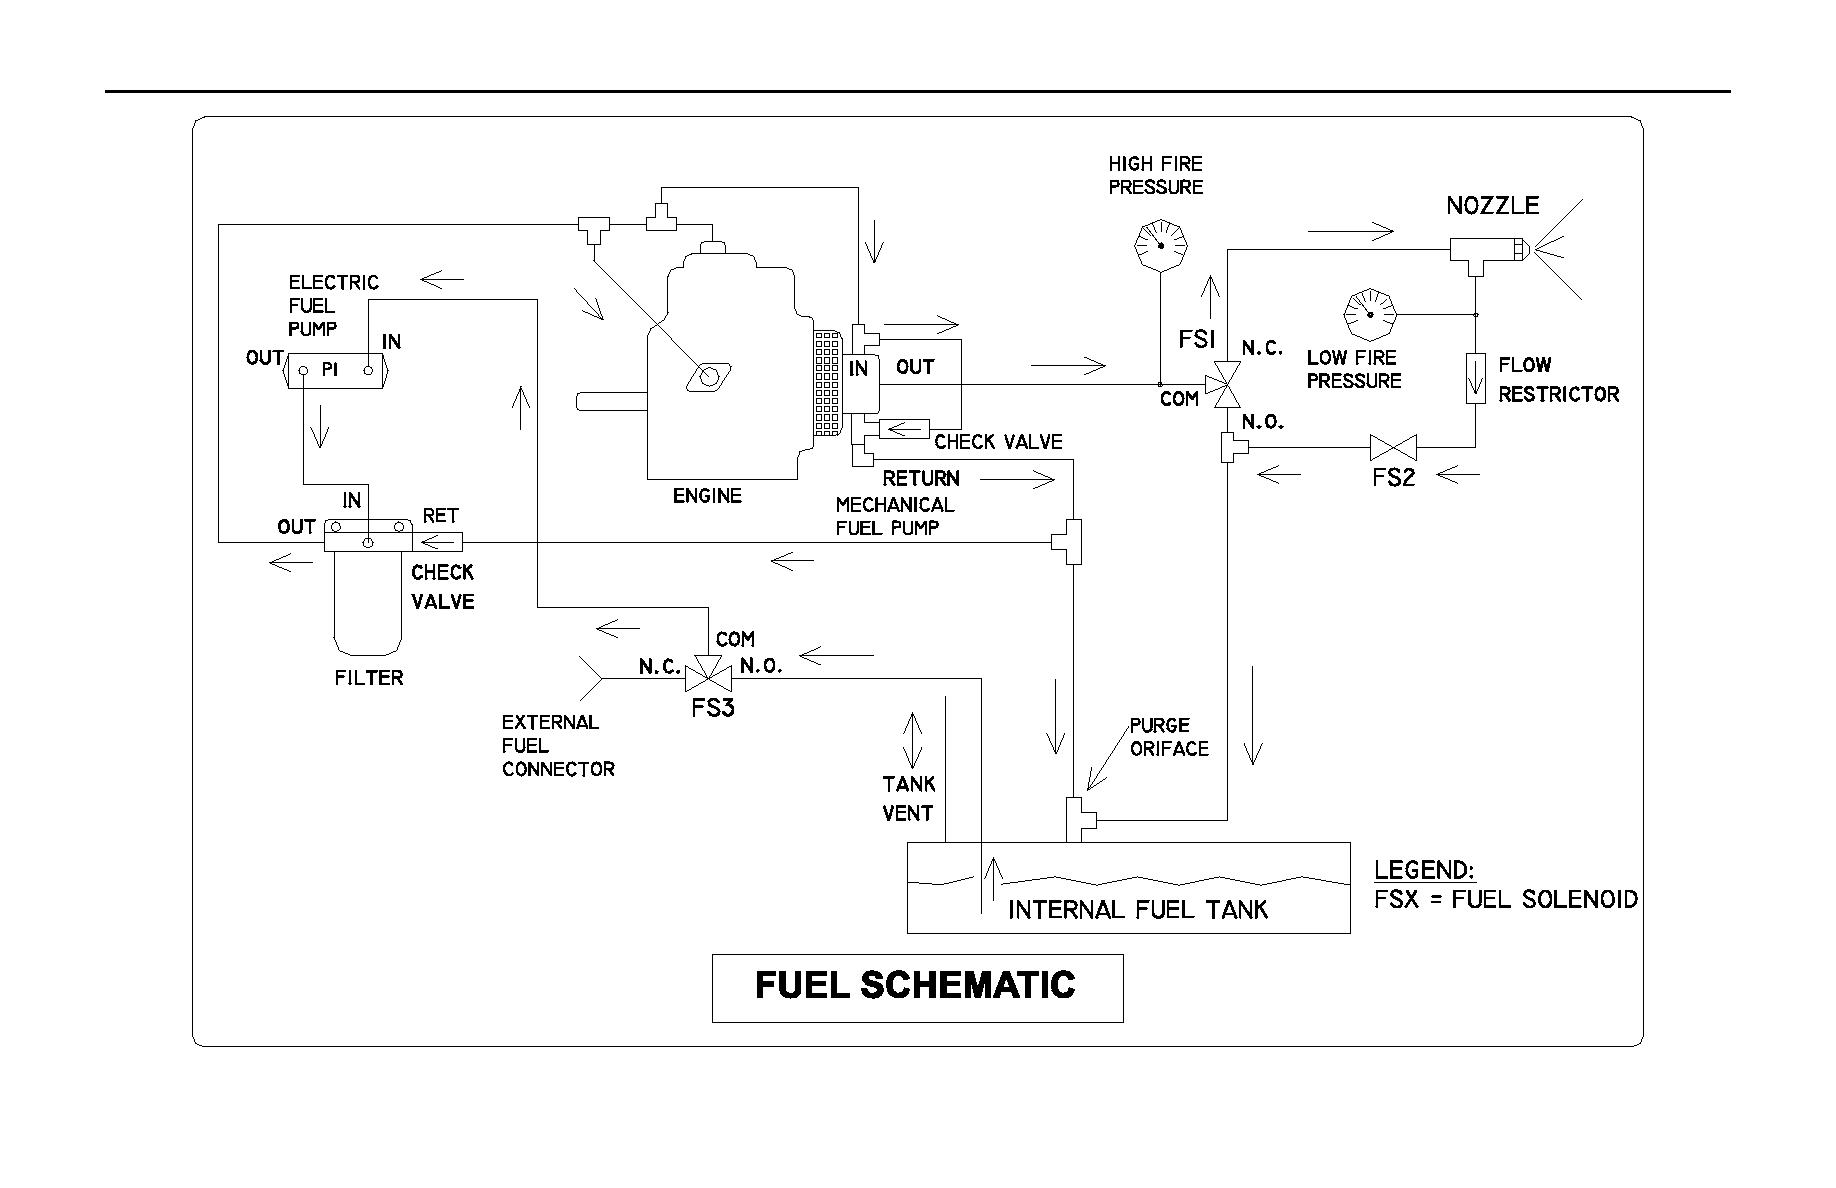 Fuel System Wiring Diagram Real 1988 Ford Ranger Schematic Circuit And Schematics 07 Chevy C6500